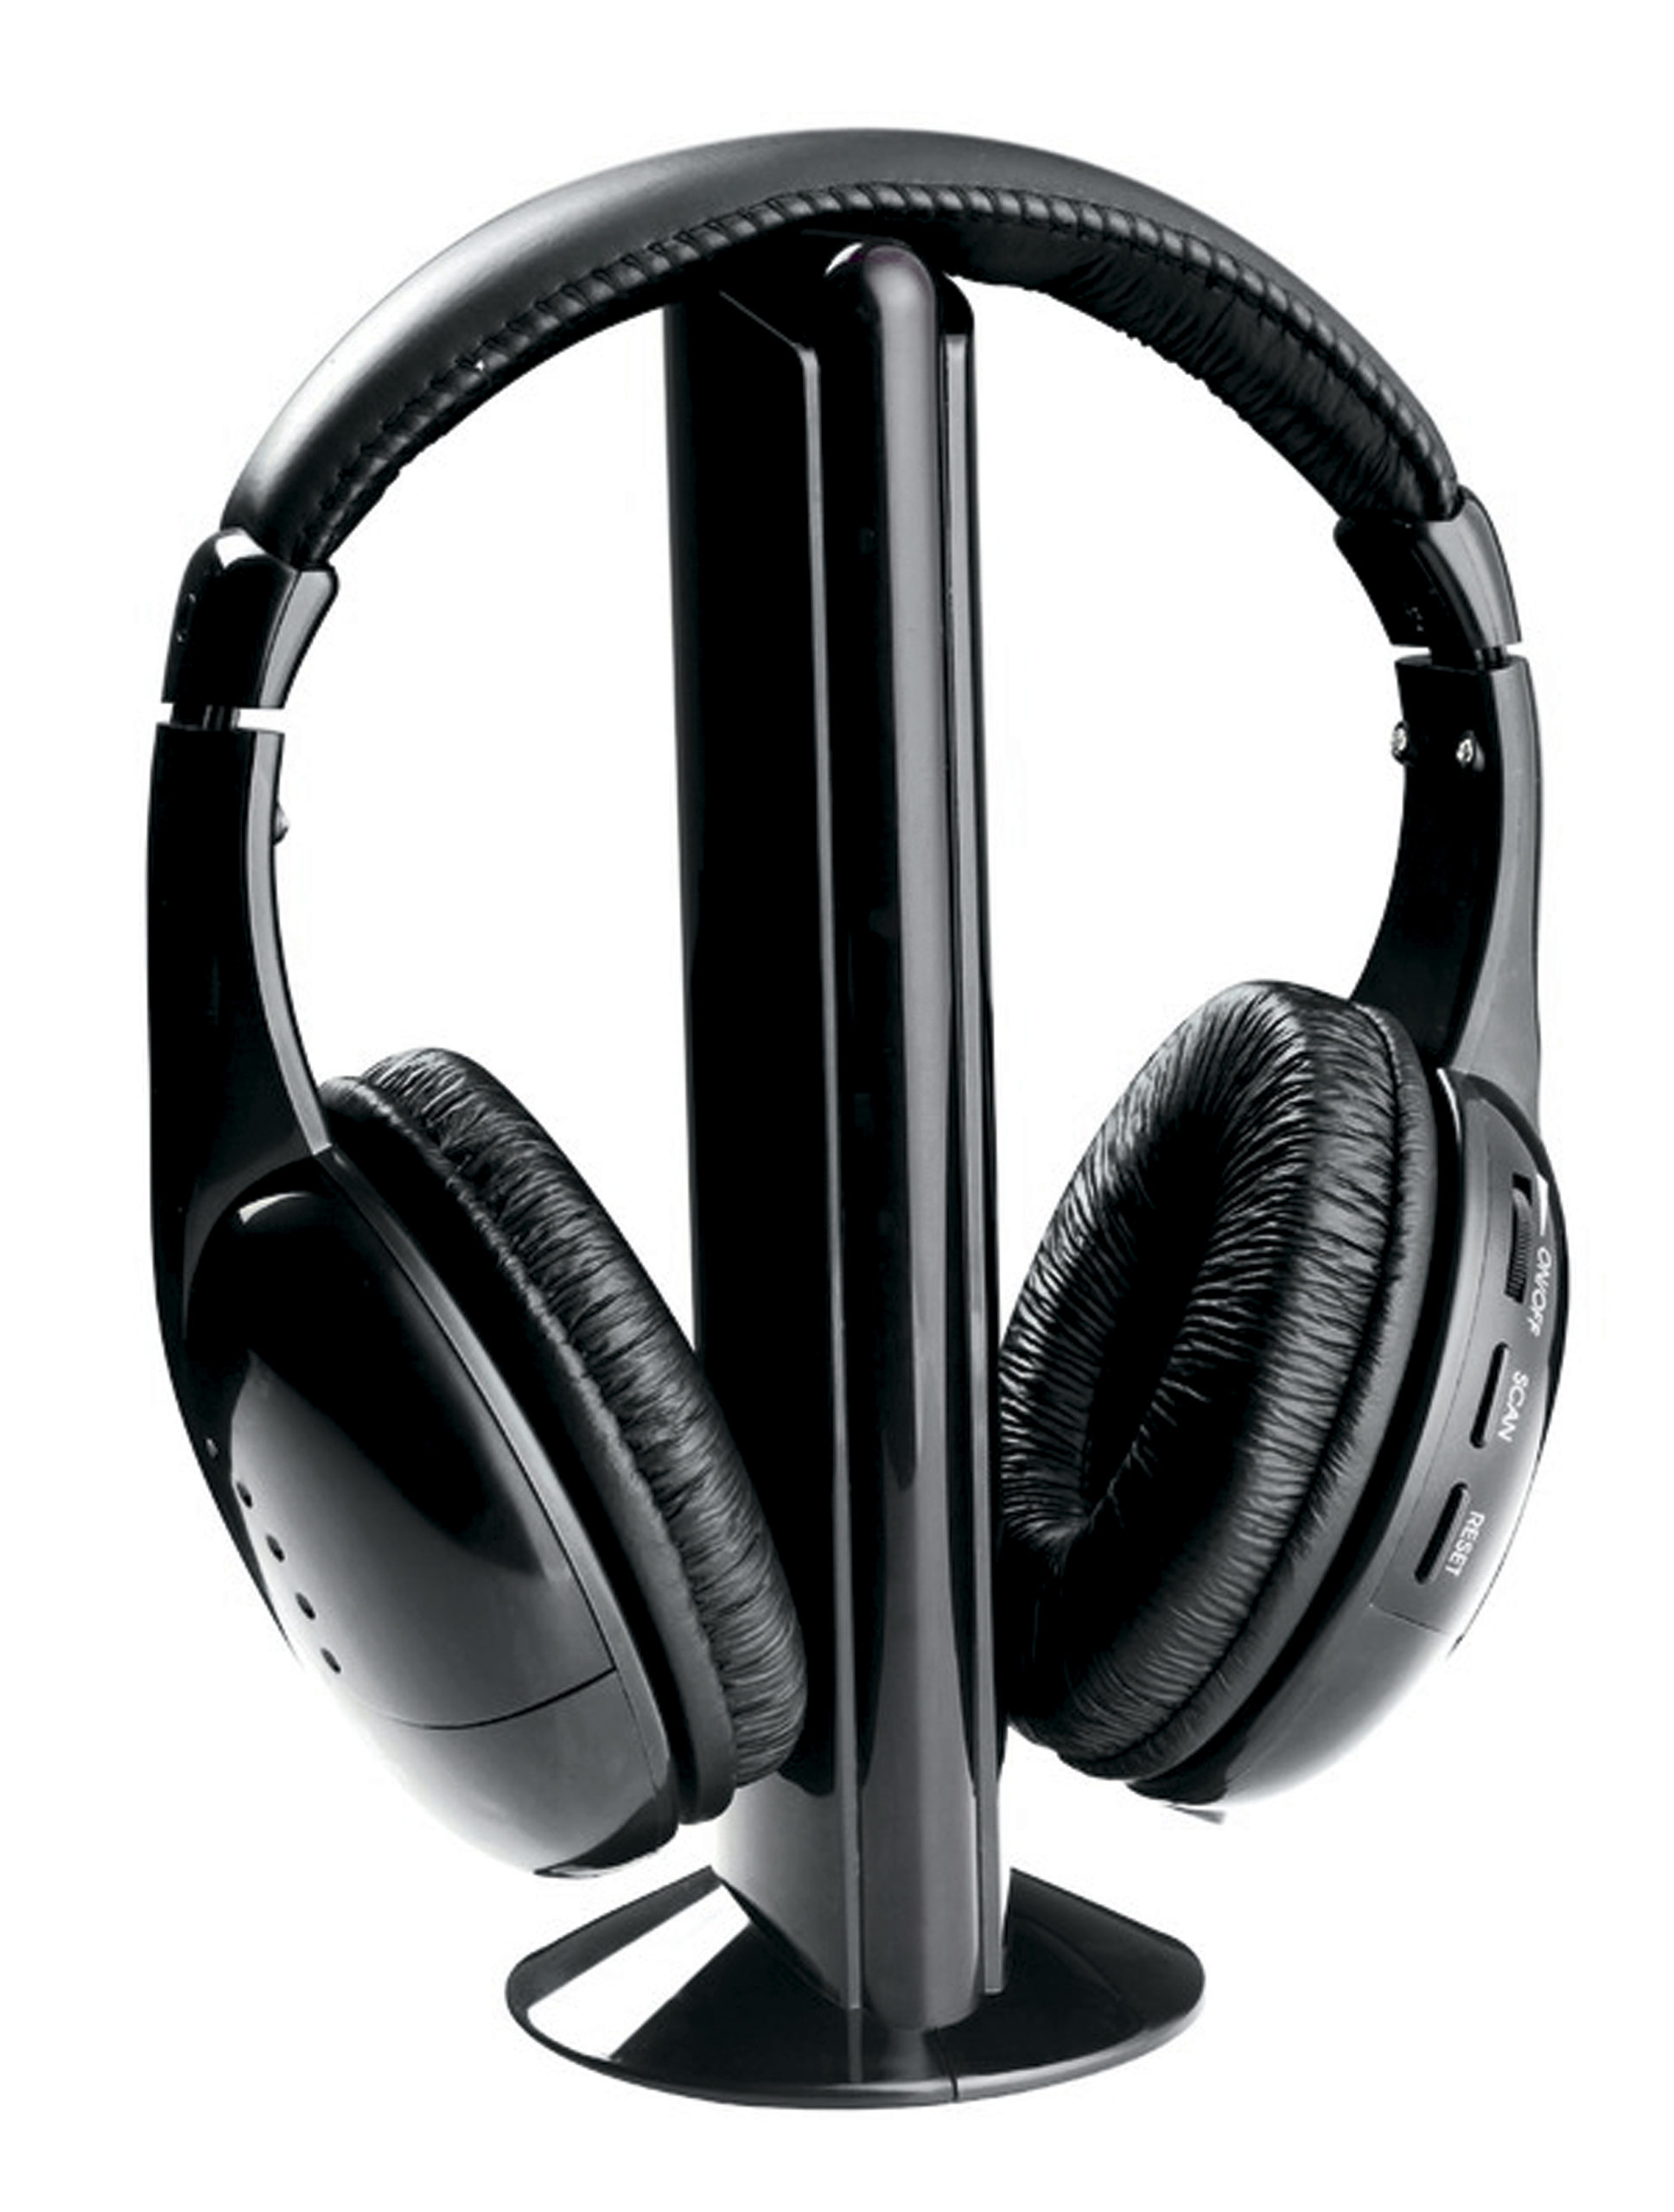 Professional 5-In-1 Wireless Headphone System